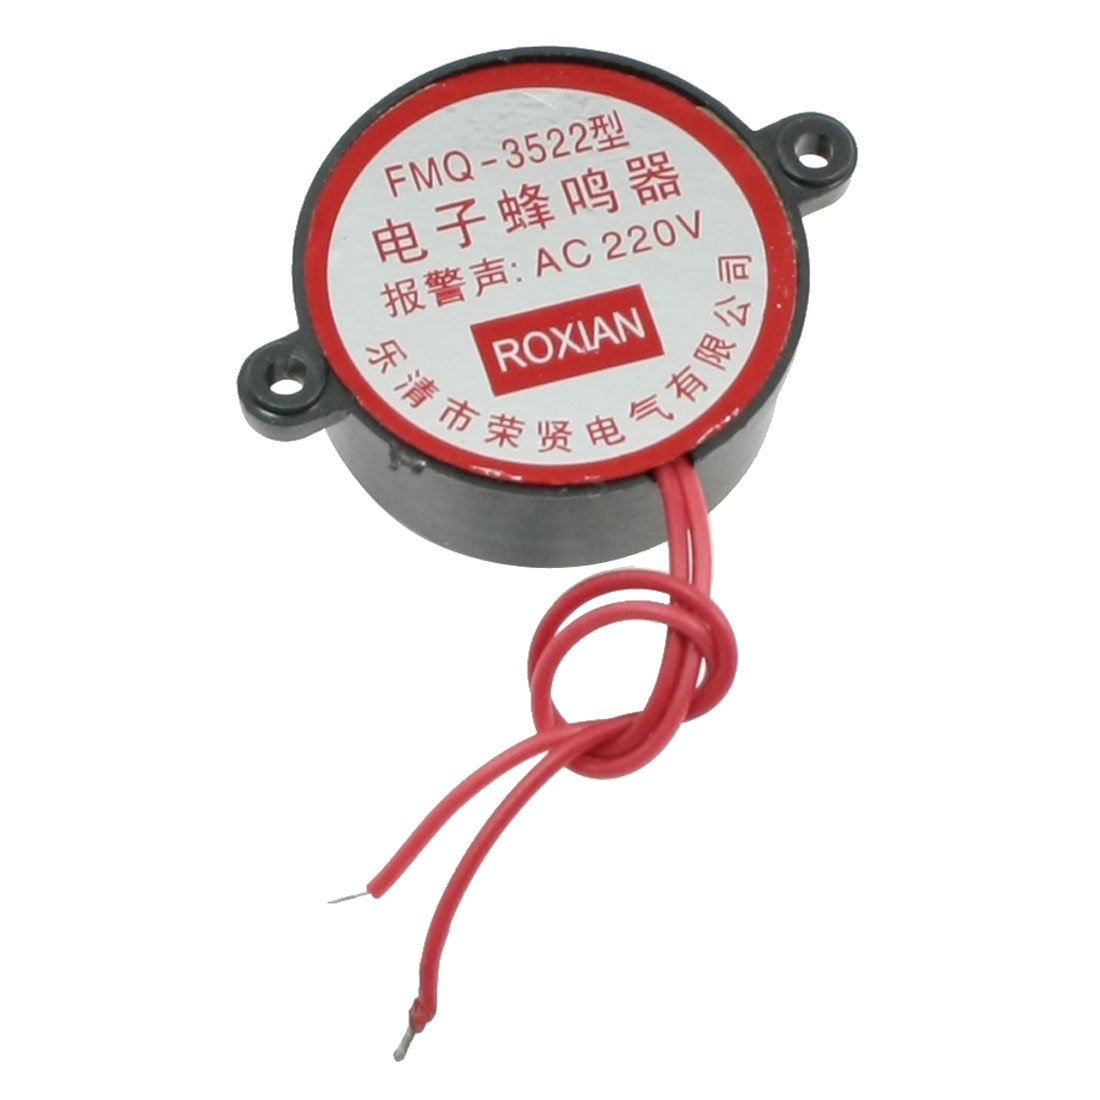 FMQ-3522 AC 220V Industrial Continuous Sound Electronic Buzzer 80dB